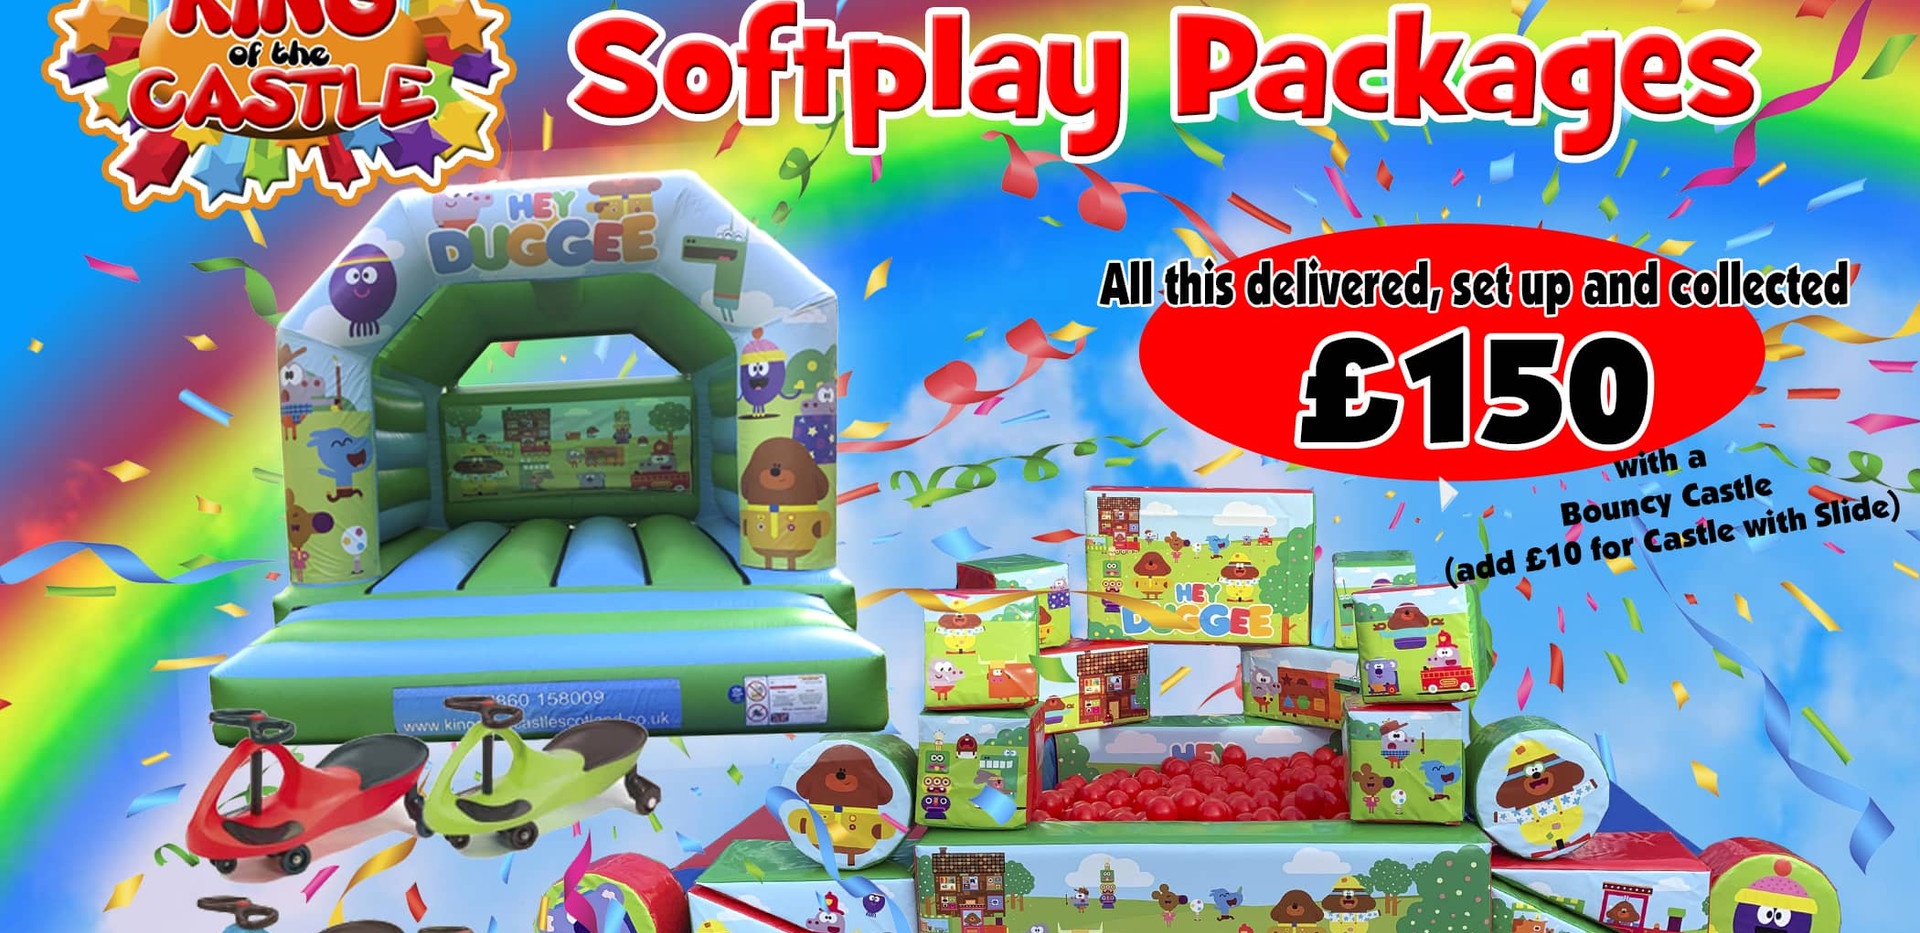 Soft Play - Hey Duggee Package - UPDATED